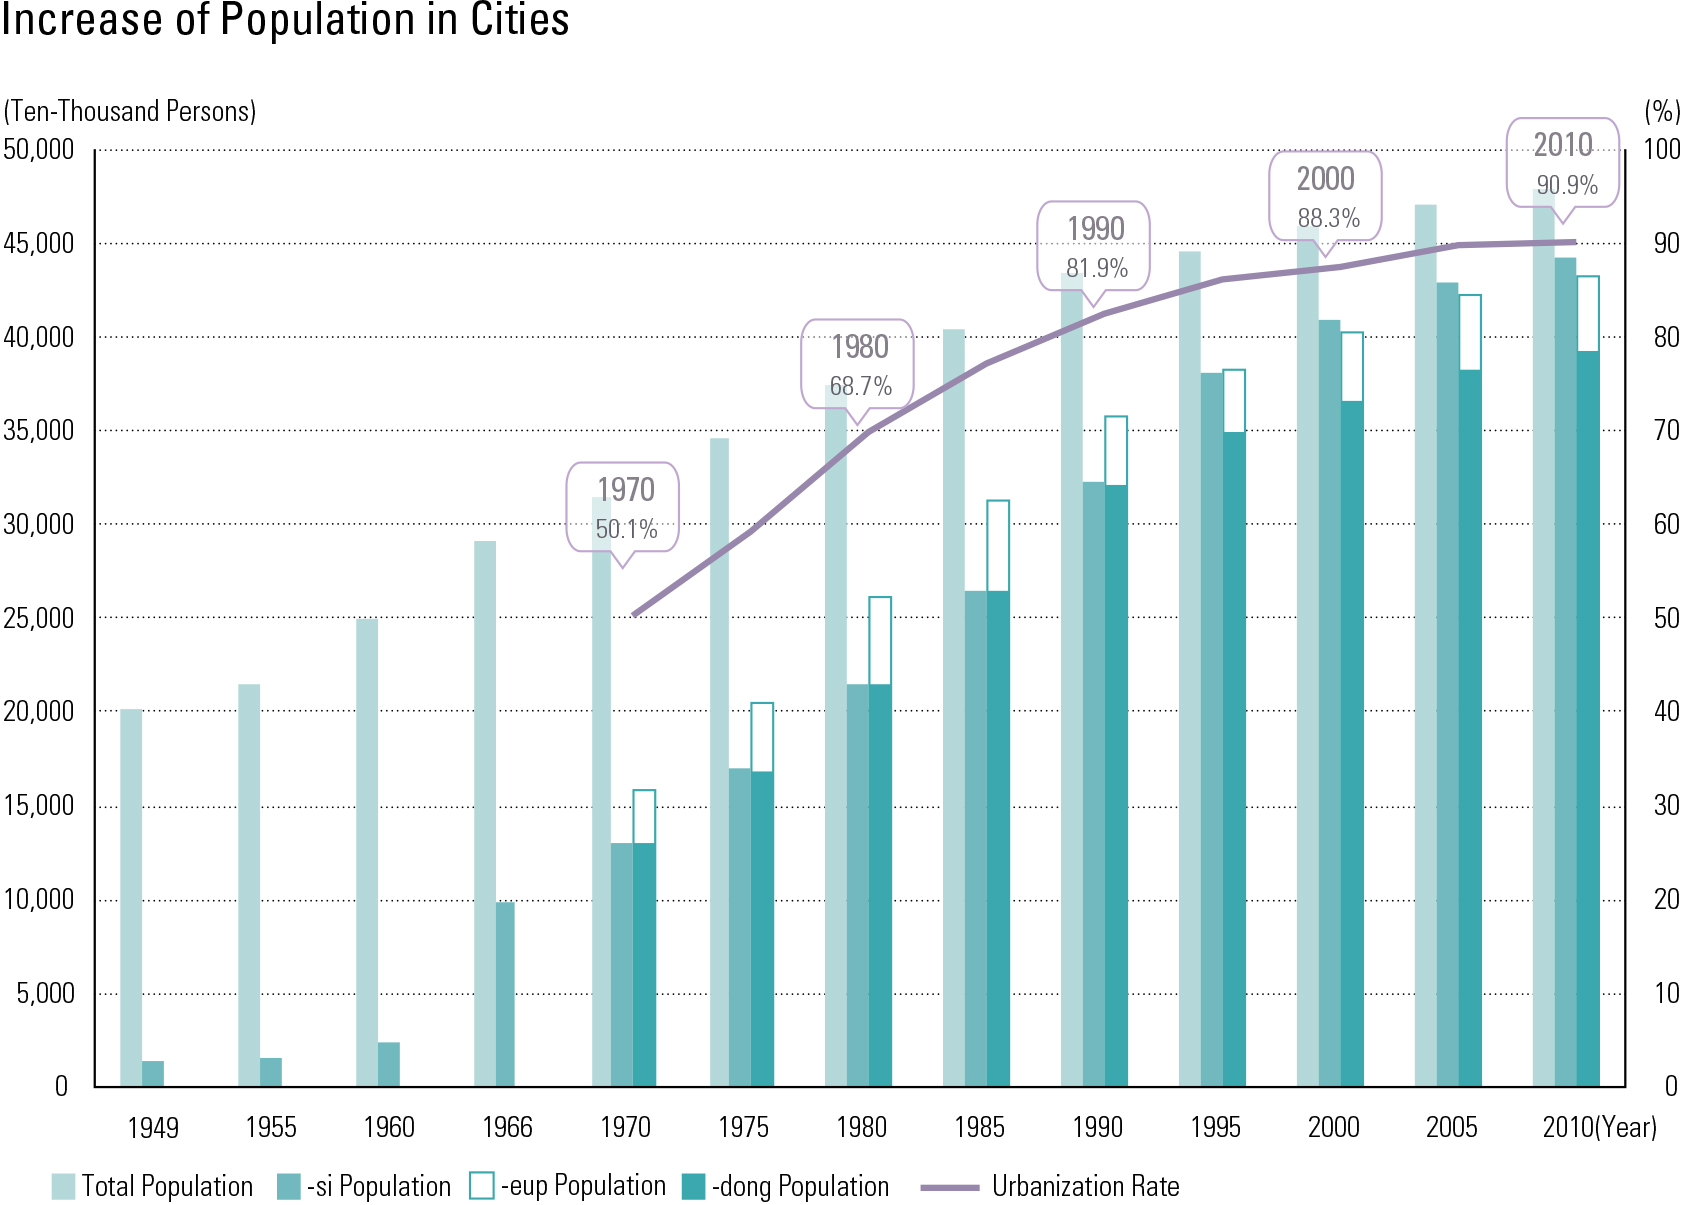 "Increase of Population in Cities<p class=""oz_zoom"" zimg=""http://imagedata.cafe24.com/us_3/us3_36-2_2.jpg""><span style=""font-family:Nanum Myeongjo;""><span style=""font-size:18px;""><span class=""label label-danger"">UPDATE DATA</span></span></p>"